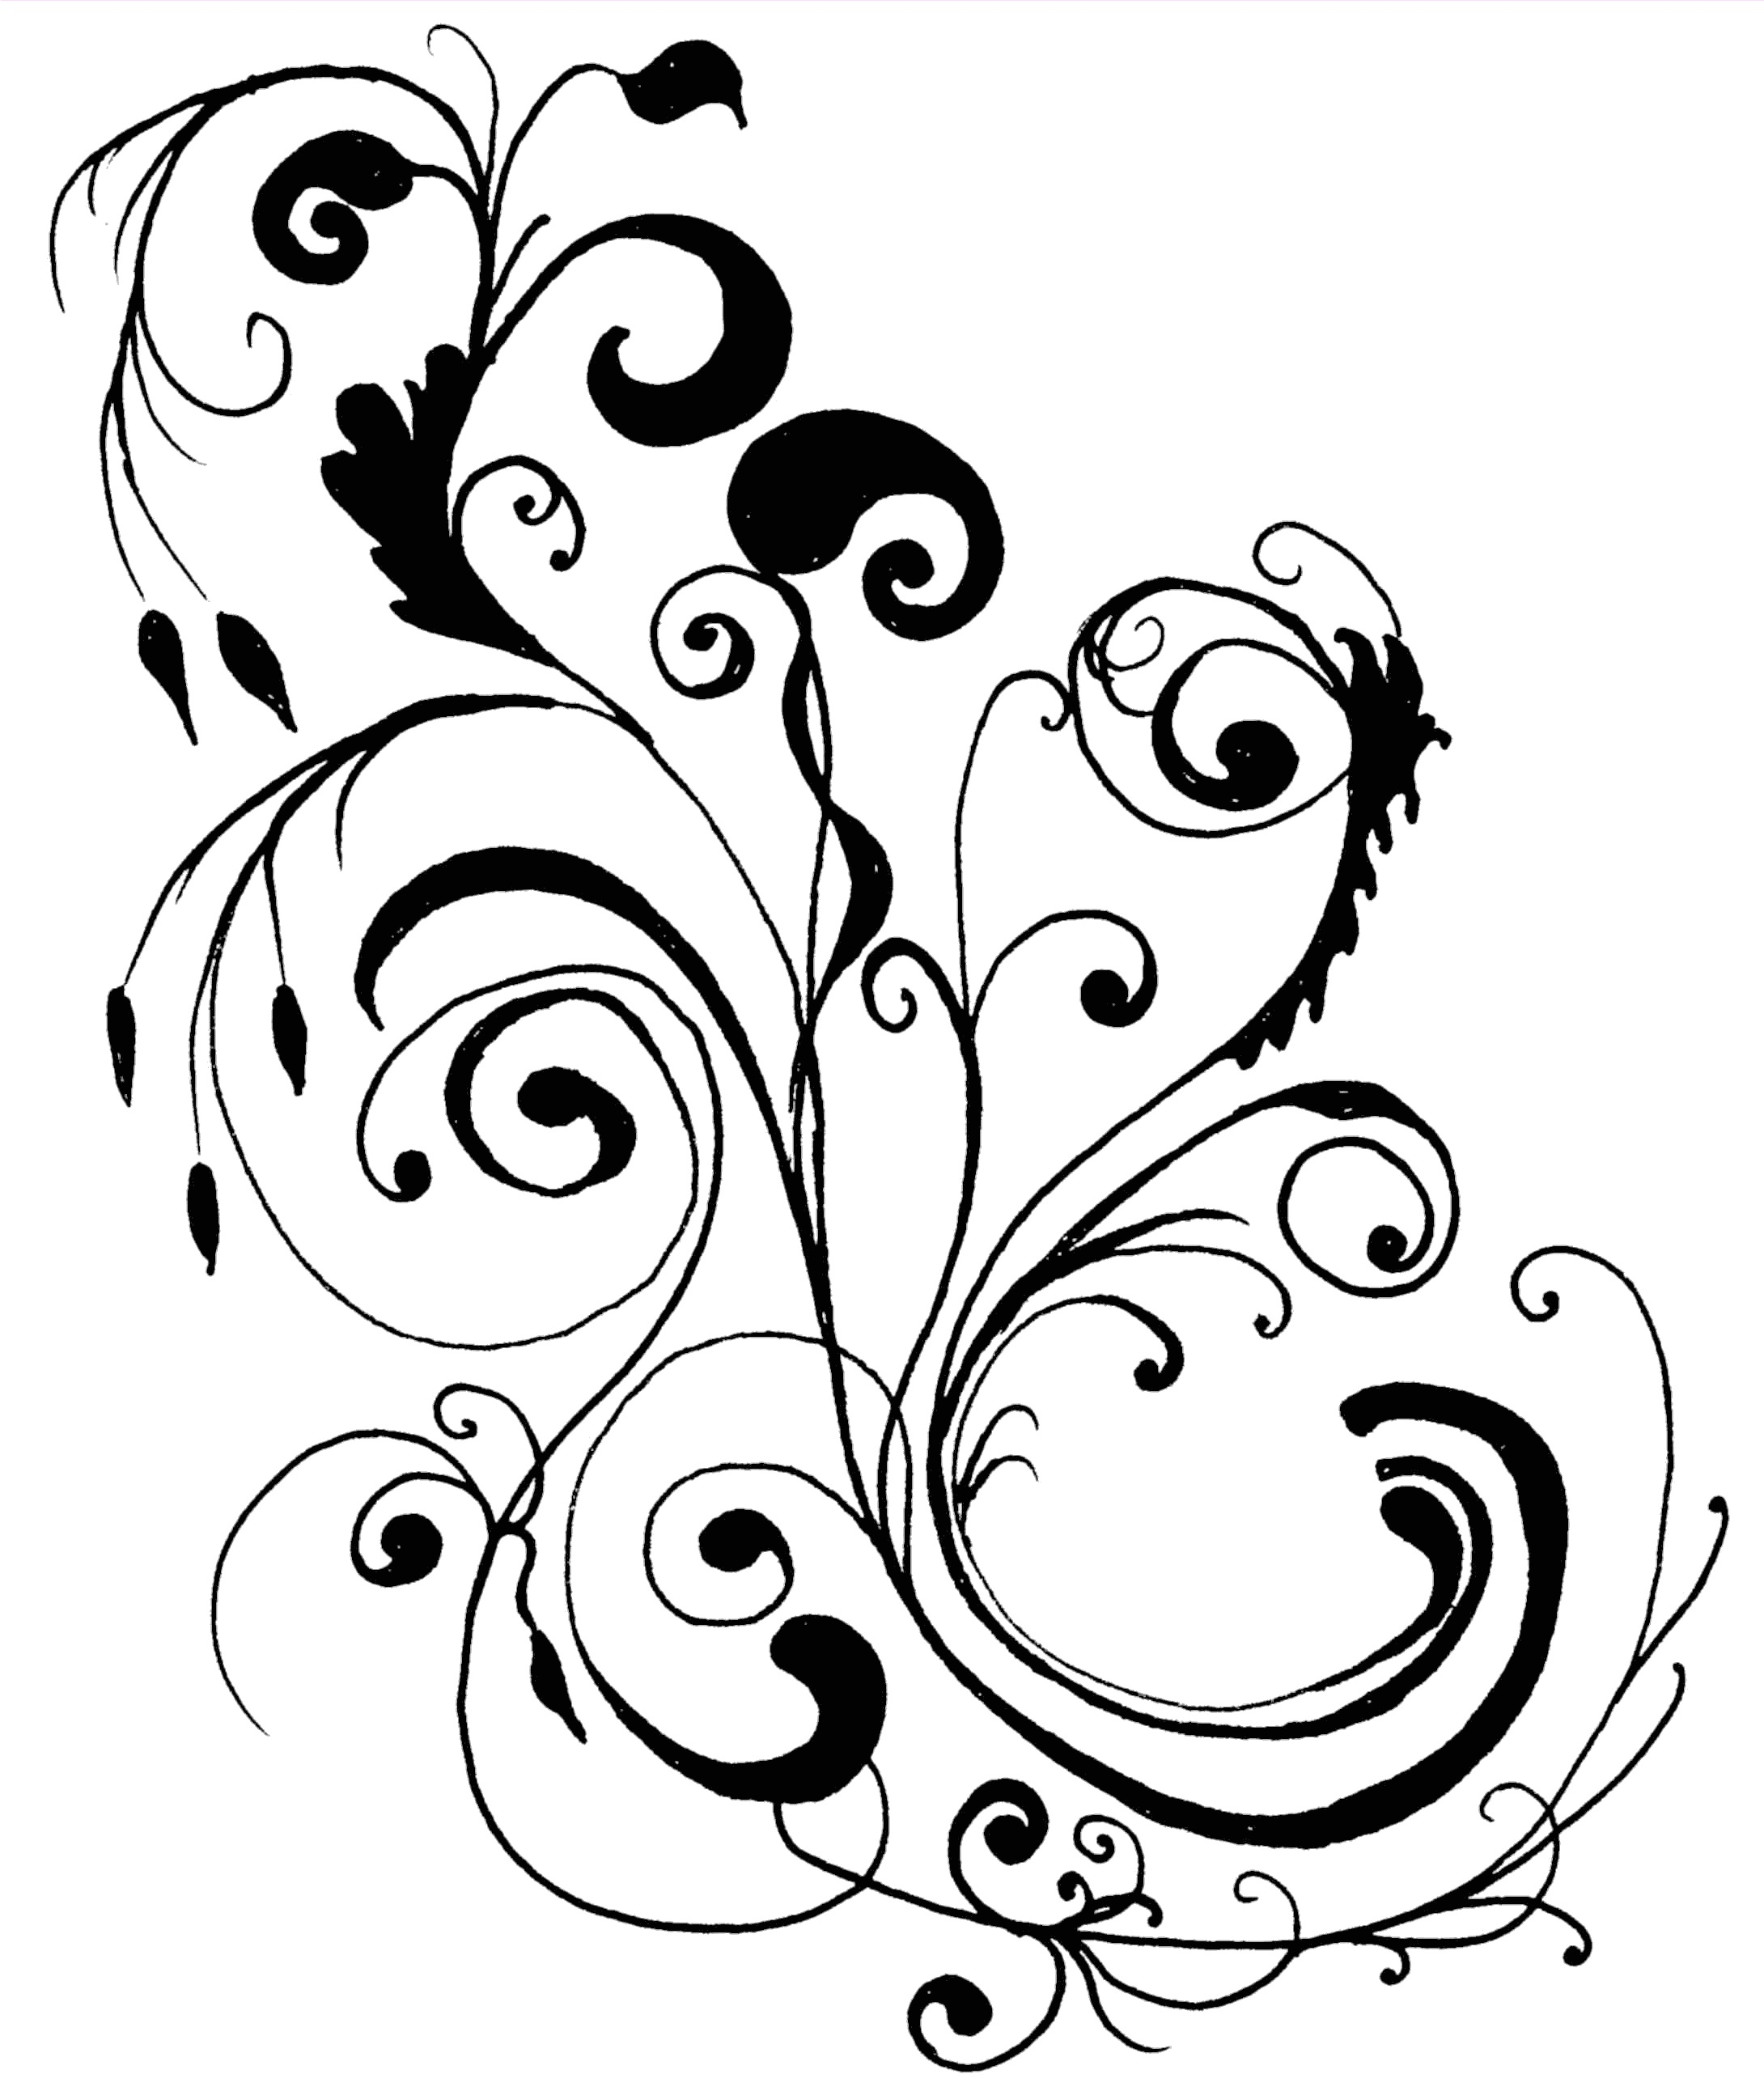 Line Art Card Design : Flower clipart panda free images